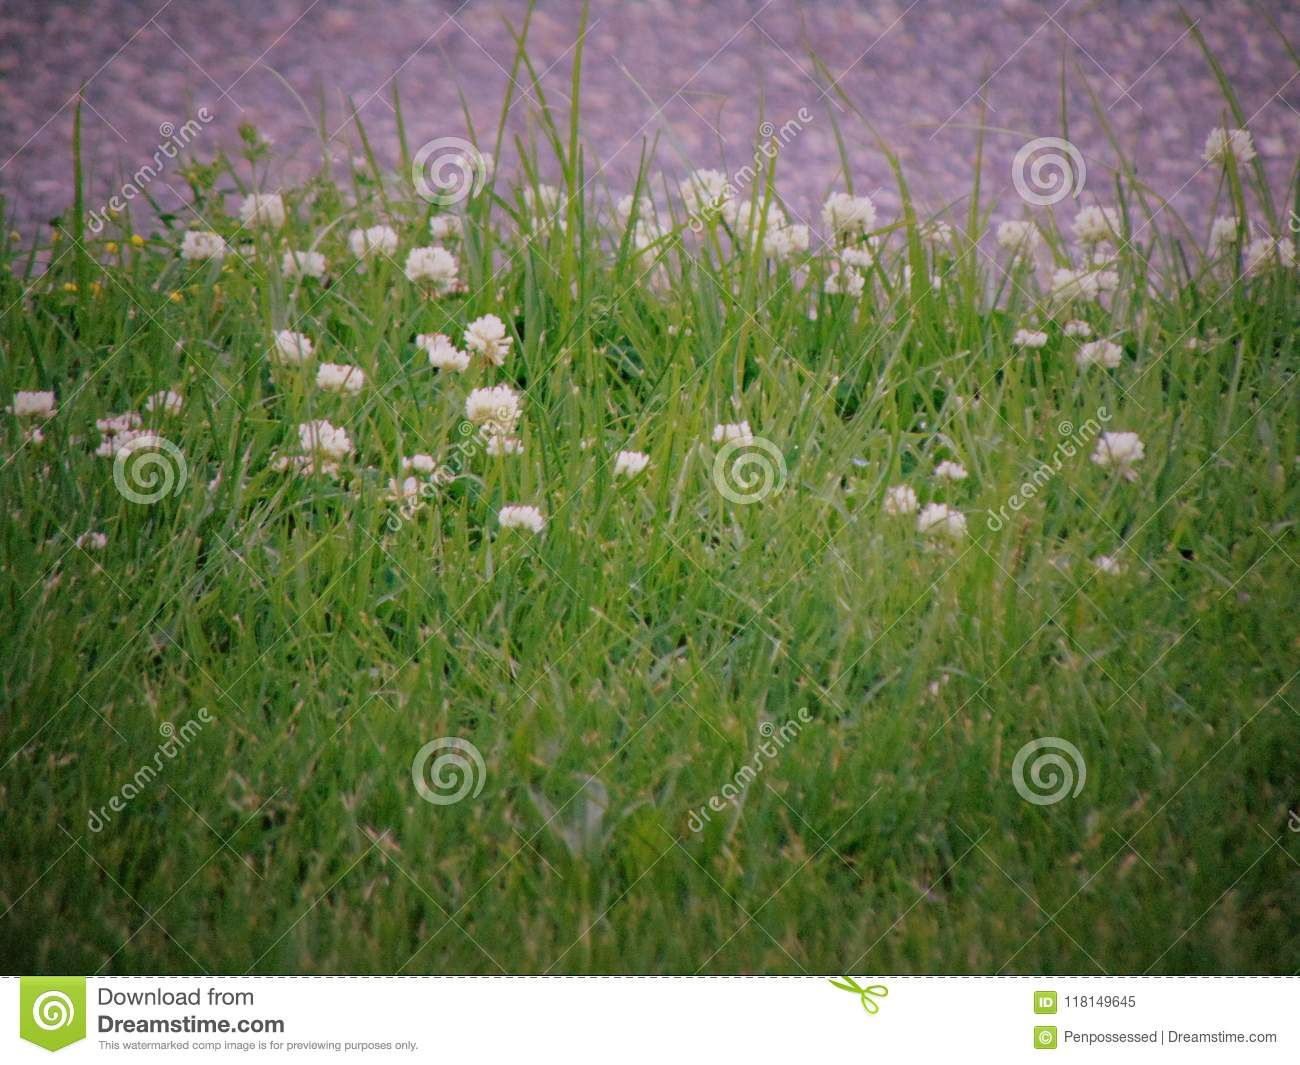 Small white flowering weeds growing in tall grass stock image small white flowering weeds growing in tall grass mightylinksfo